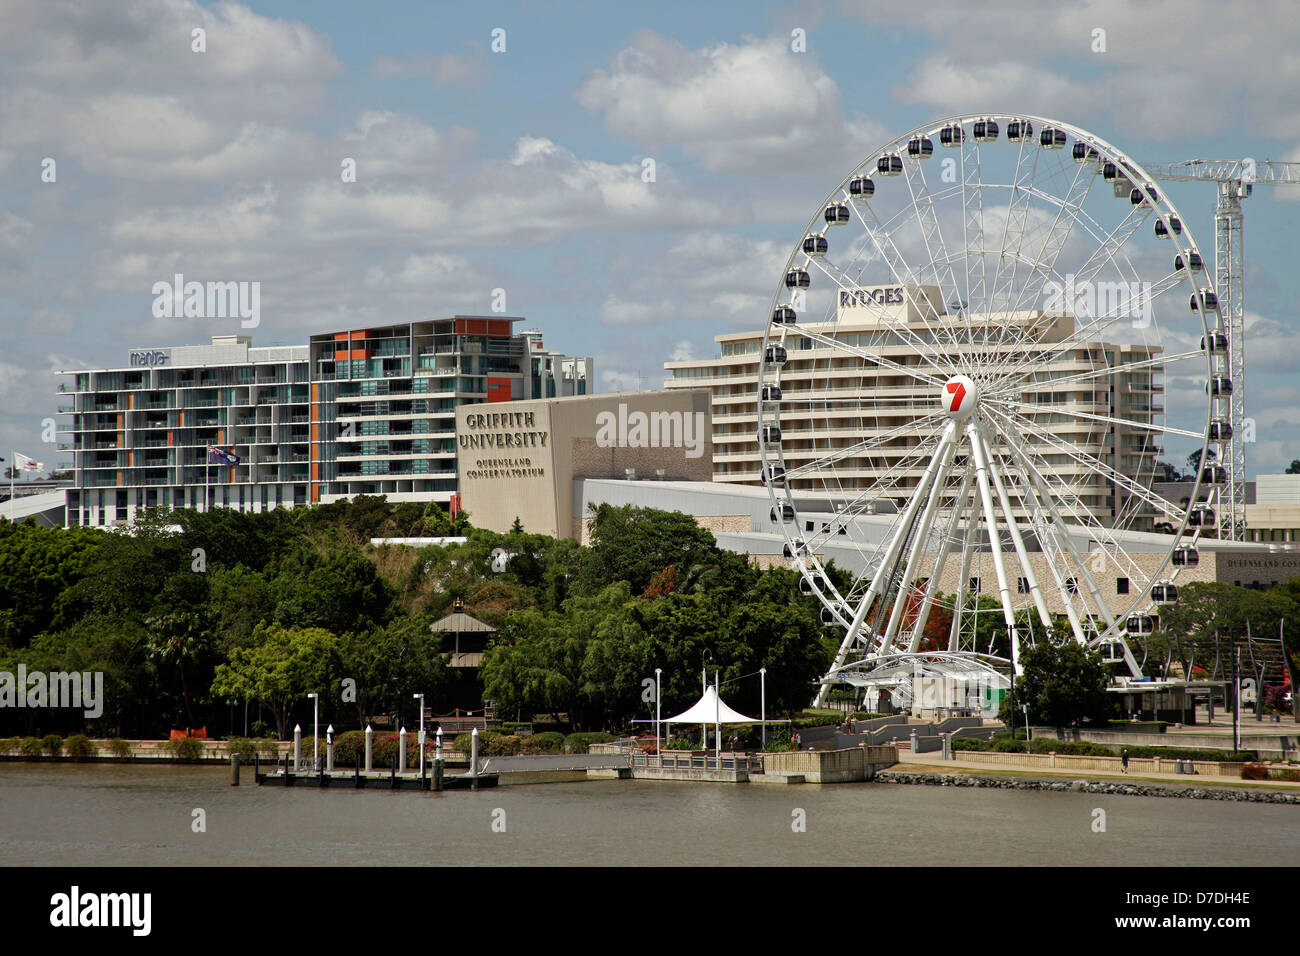 giant ferris wheel of Brisbane and Griffith University on South Bank in Brisbane, Queensland, Australien - Stock Image